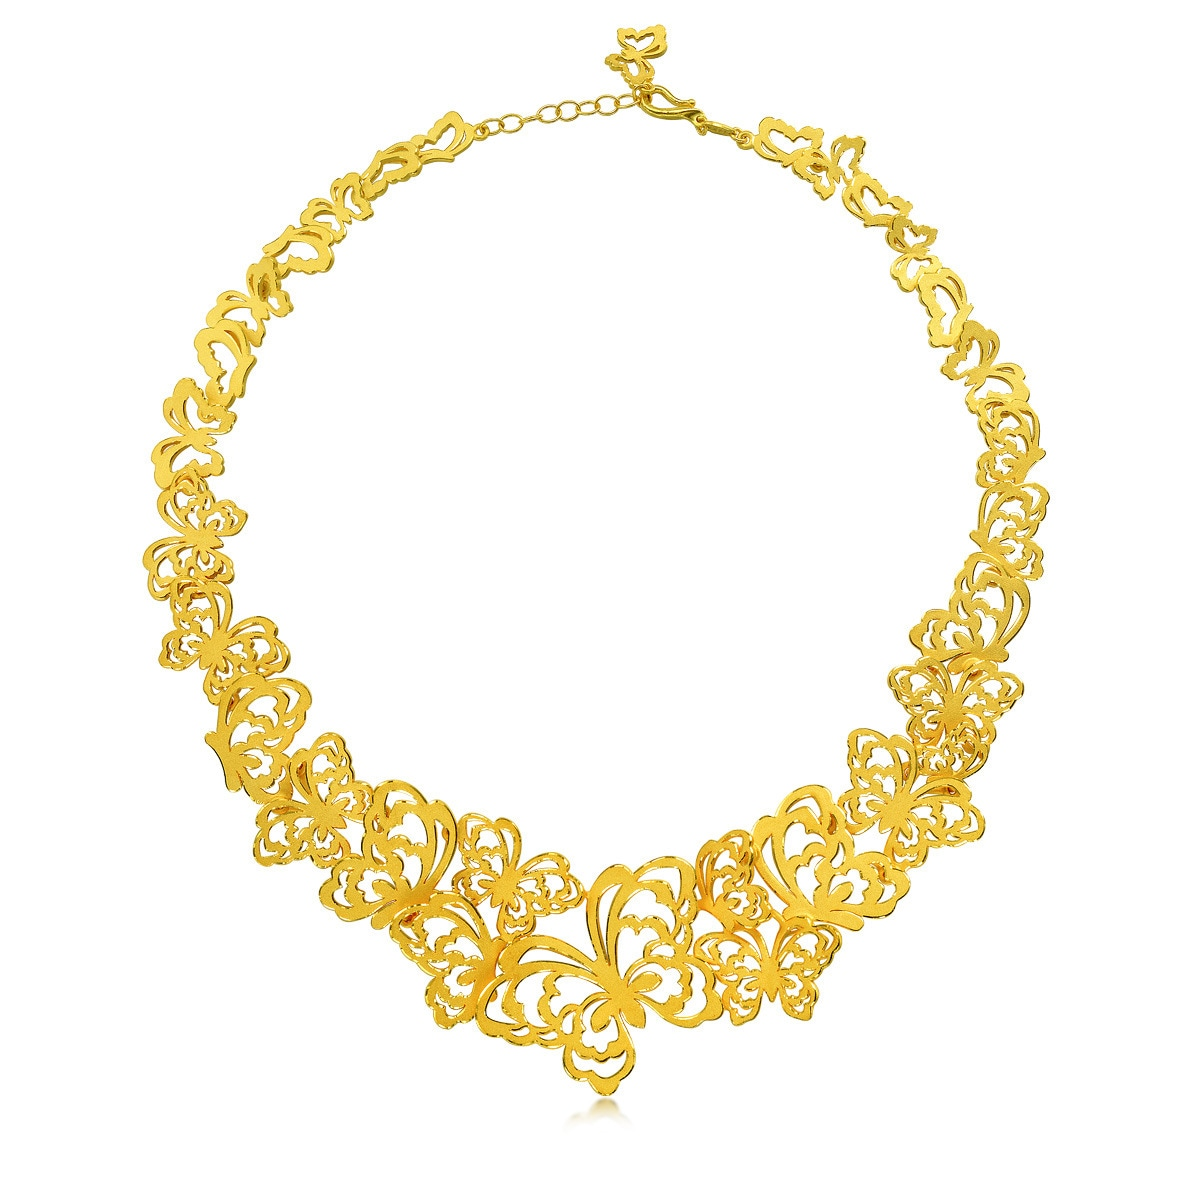 Chinese Wedding Collection \'Love Symbol\' 999.9 Gold Necklace ...